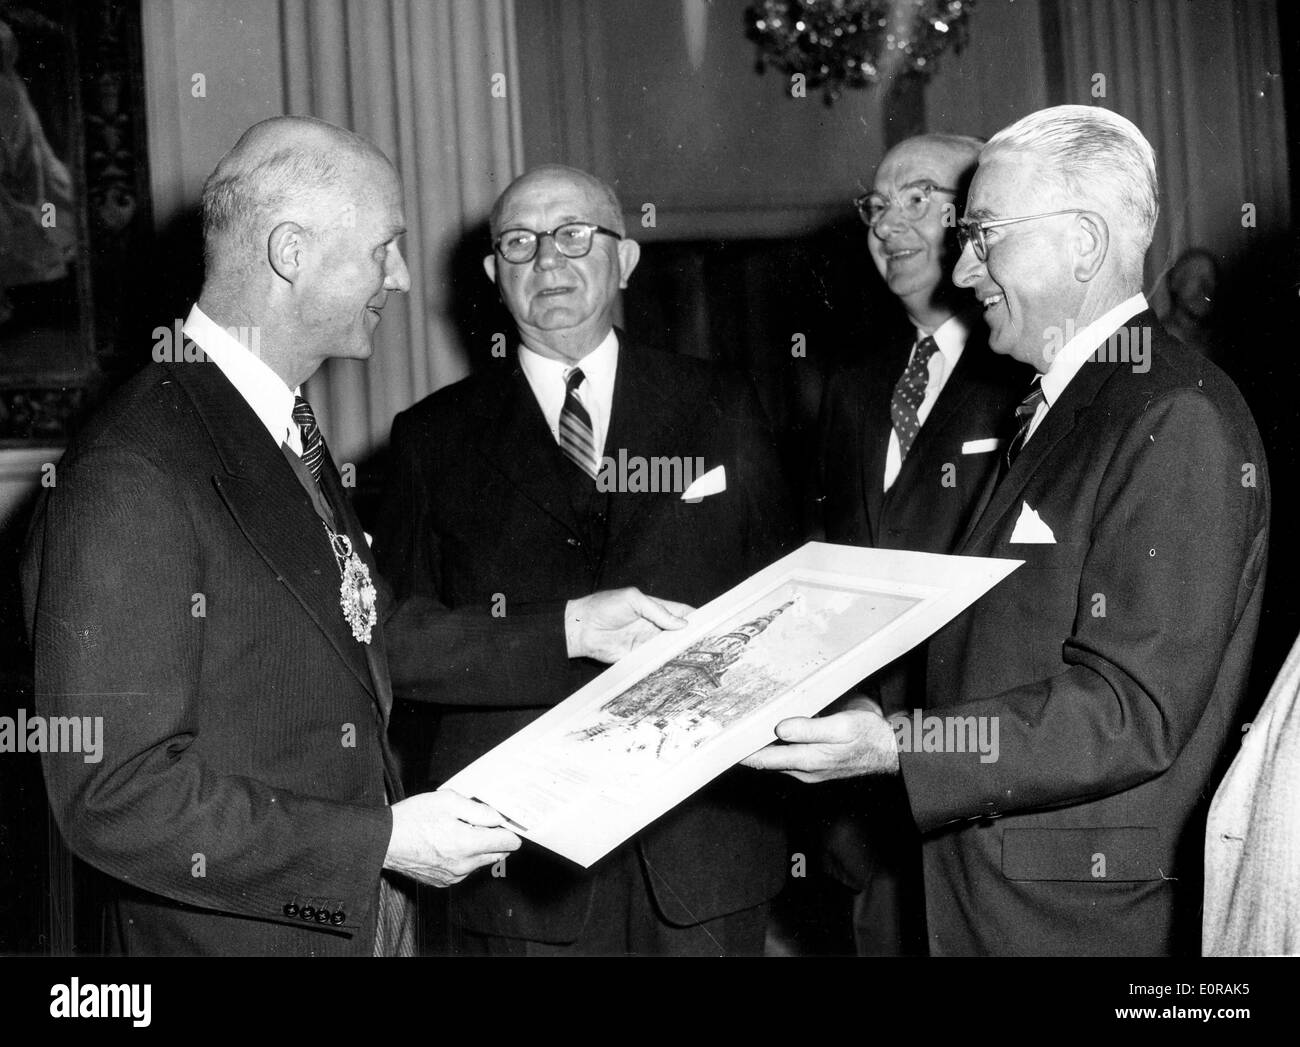 Sep 23, 1958 - London, England, UK - (File Photo) From left, Sir DENNIS TRUSCOTT, Lord Mayor of London, receives an etching from the U.S. city of Baltimore presented by EDWARD CORCORAN, CHARLES P. CRAIN, and AVERY W. HALL, at Mansion House. - Stock Image